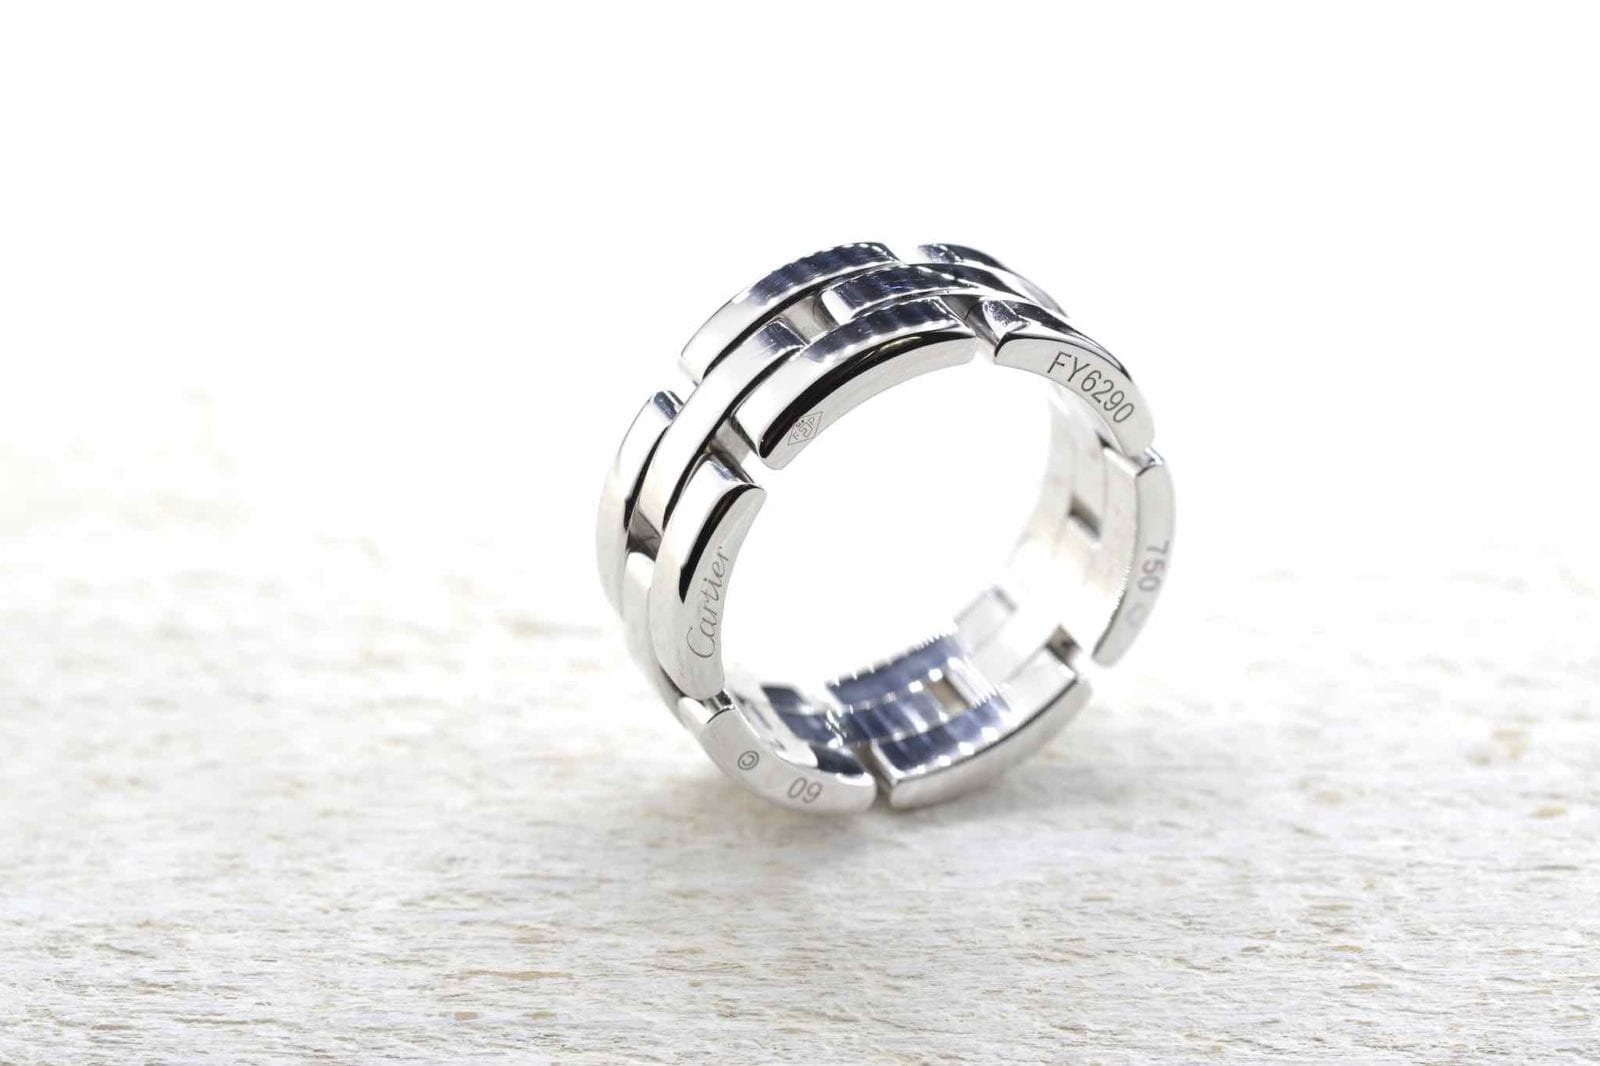 Bague Cartier d'occasion